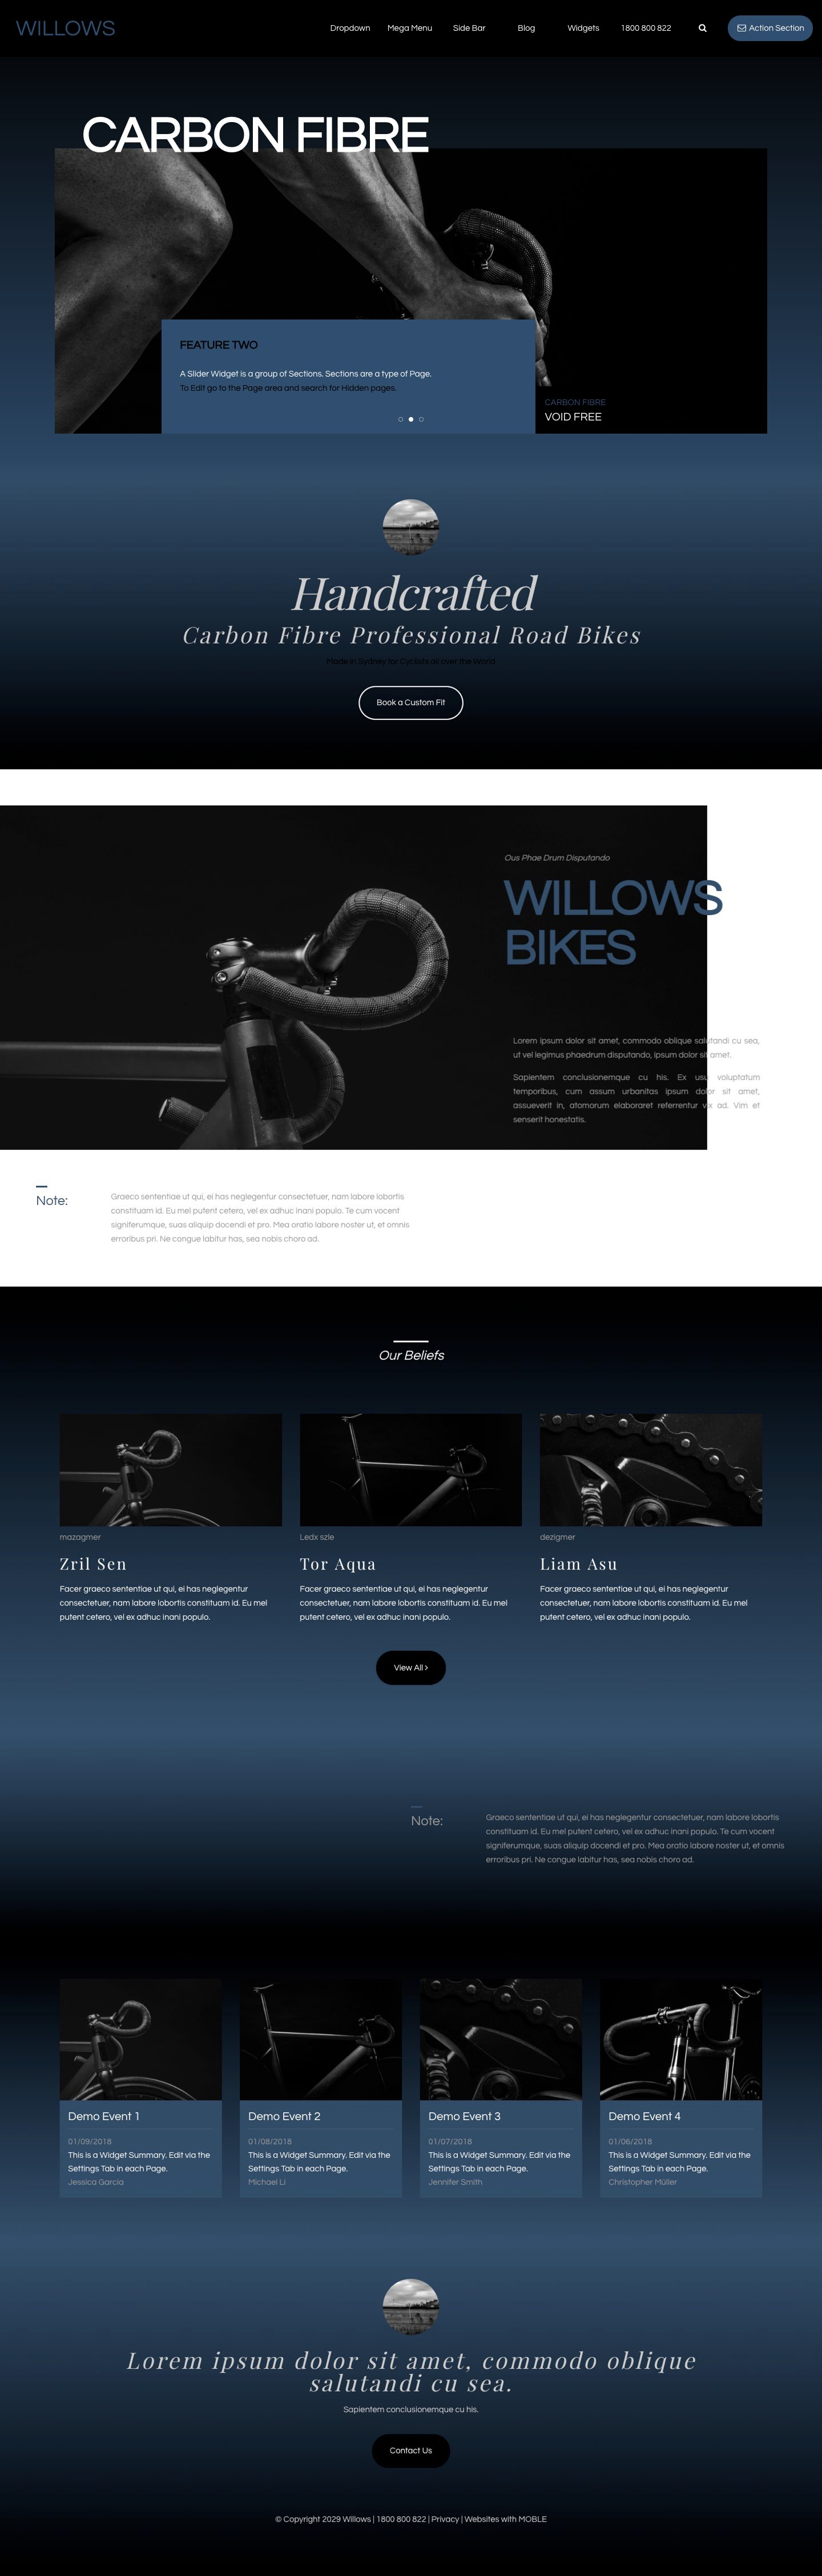 Willows Website Design